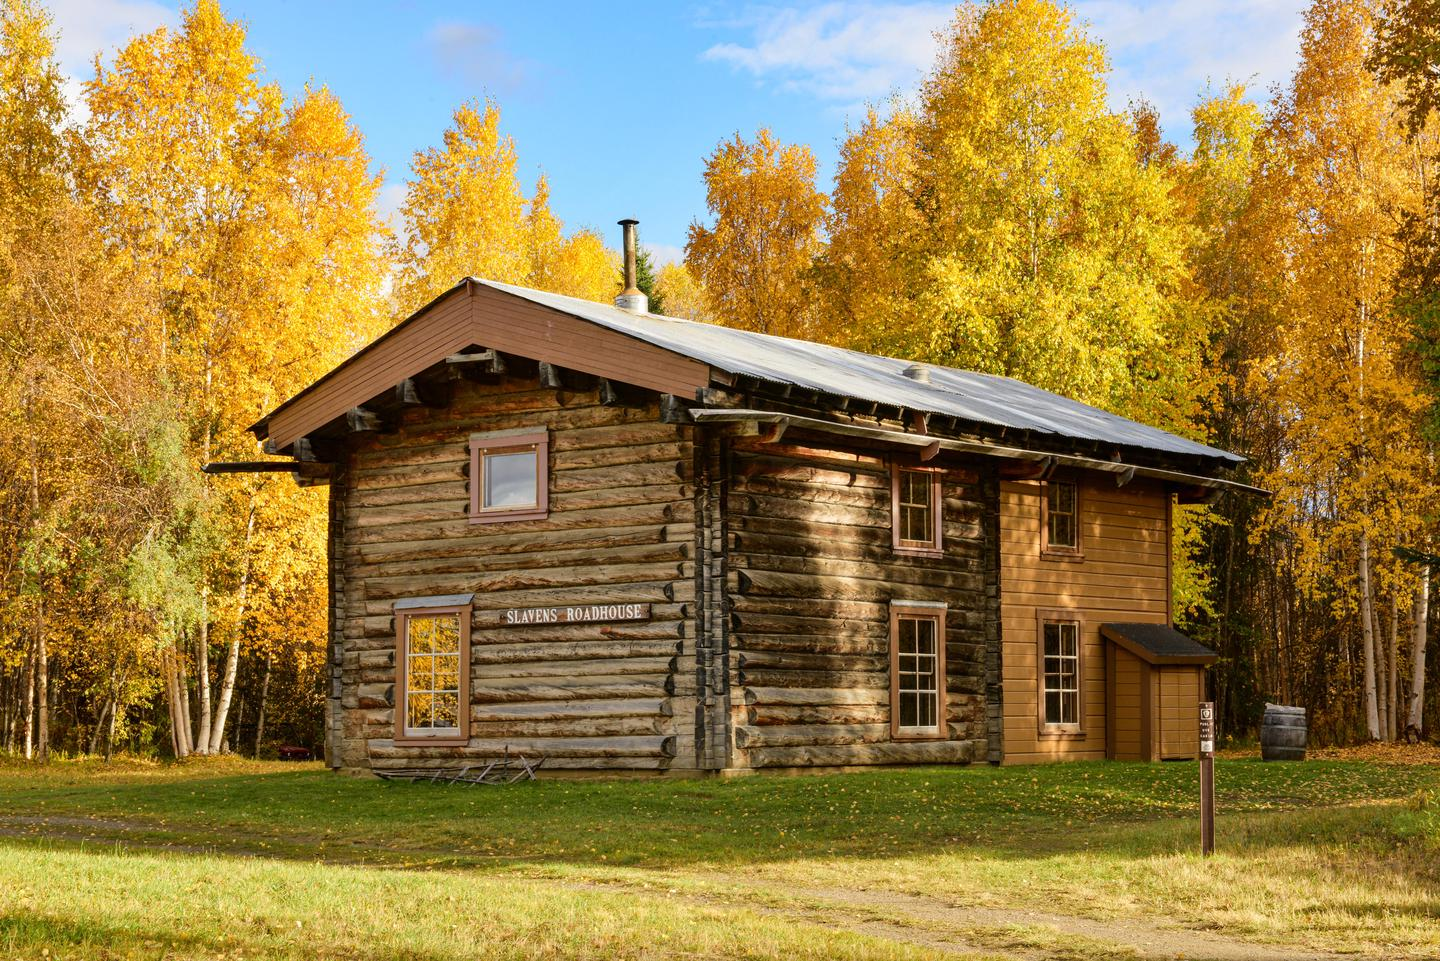 Slaven's Roadhouse during fall colorsA historic roadhouse and public use cabin on the Yukon River